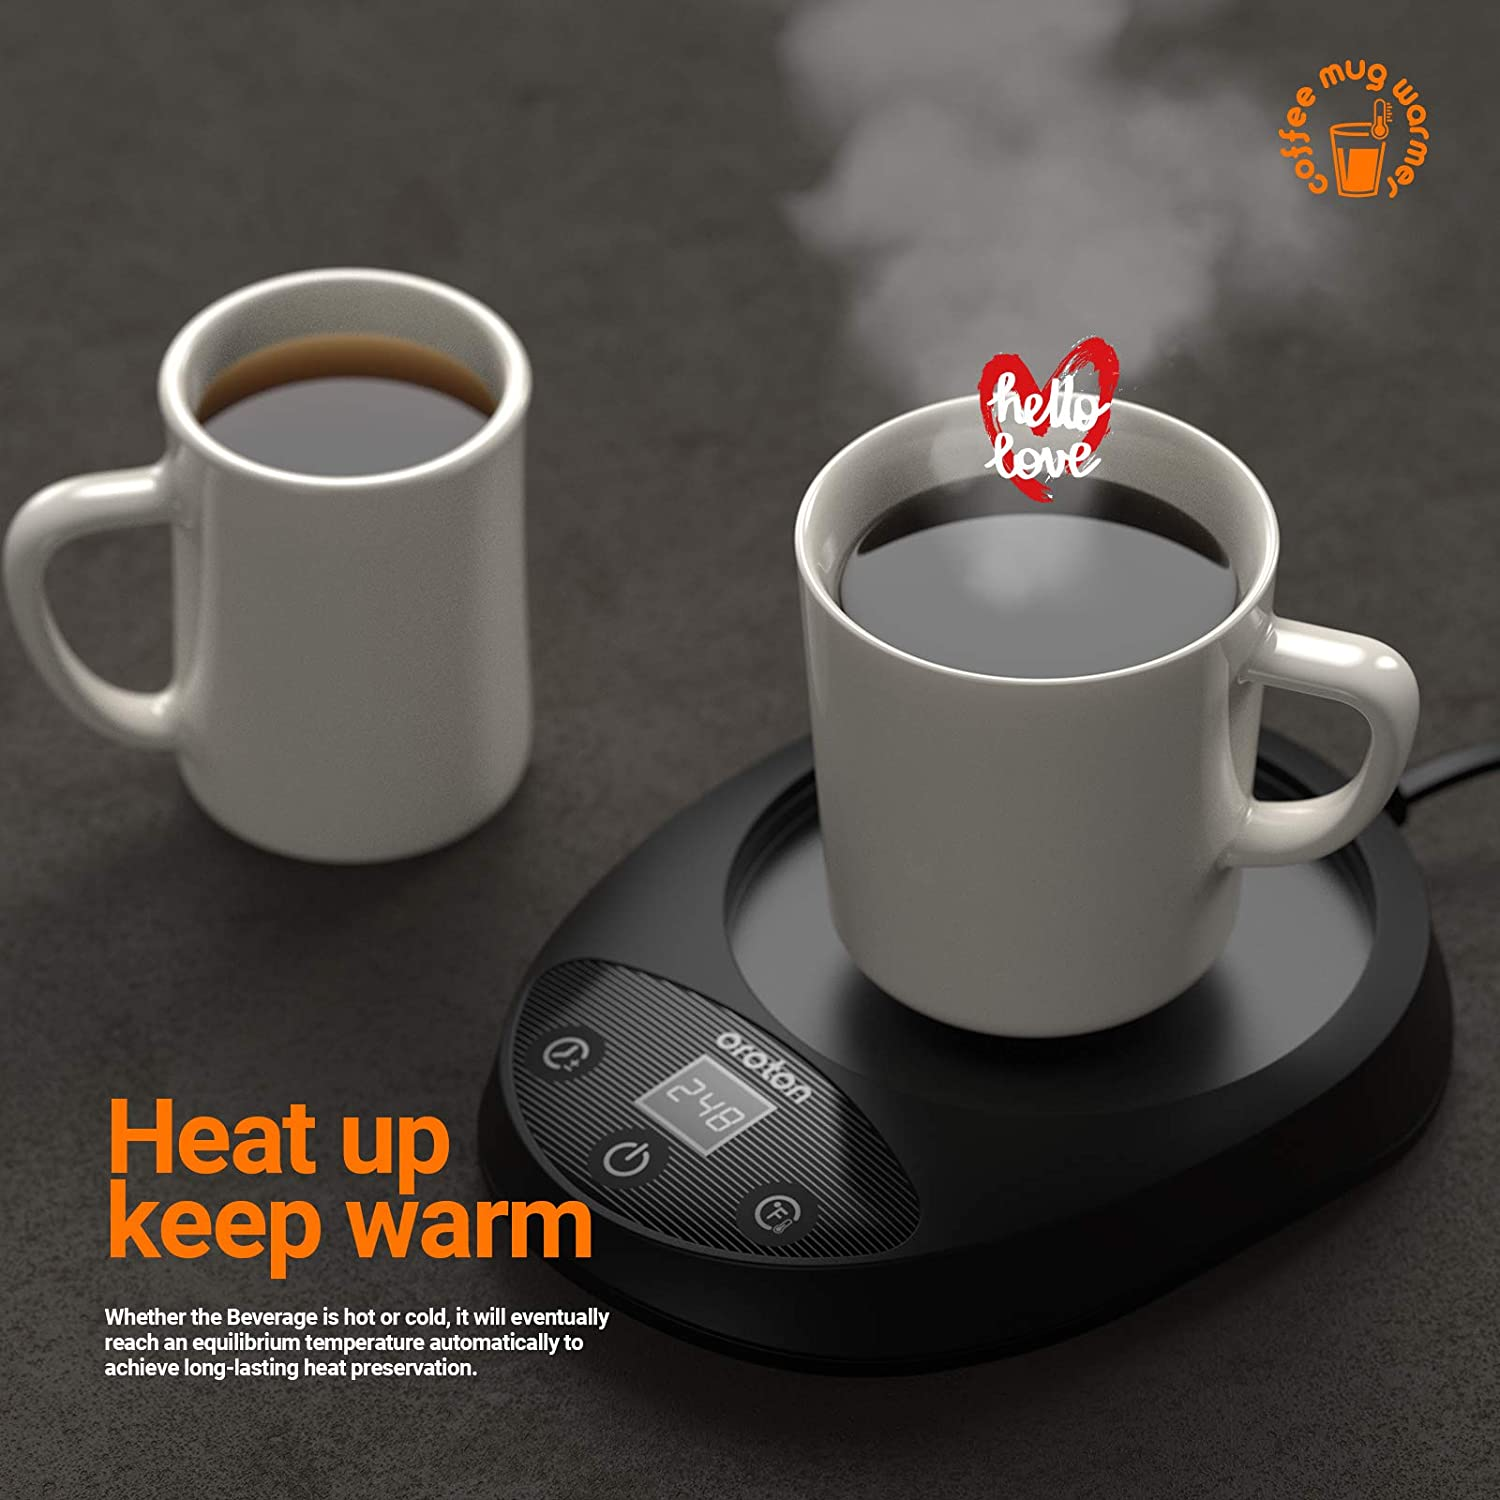 Christmas Gifts for Coffee Lovers. Black Electric Coffee Warmer with Auto Shut Off Milk Oroton Coffee Mug Warmer for Desk Formula Bottle 8-Hour Timer Shutdown for Warming and Heating Beverage 8-Temperature Setting and Candle Wax Tea